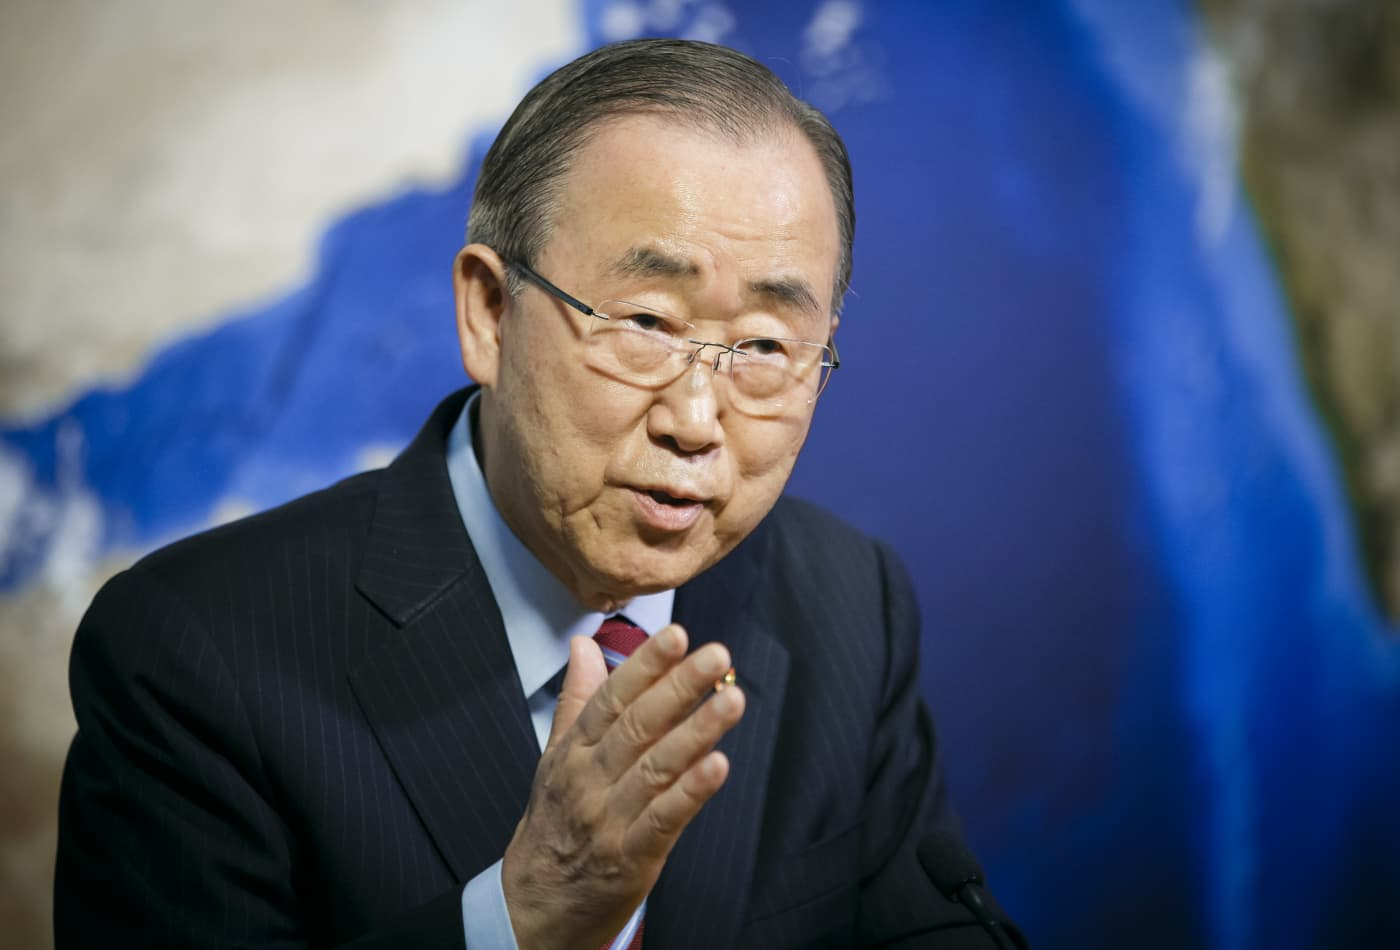 Ex-UN chief calls on America to show global leadership, says WHO withdrawal 'morally wrong'